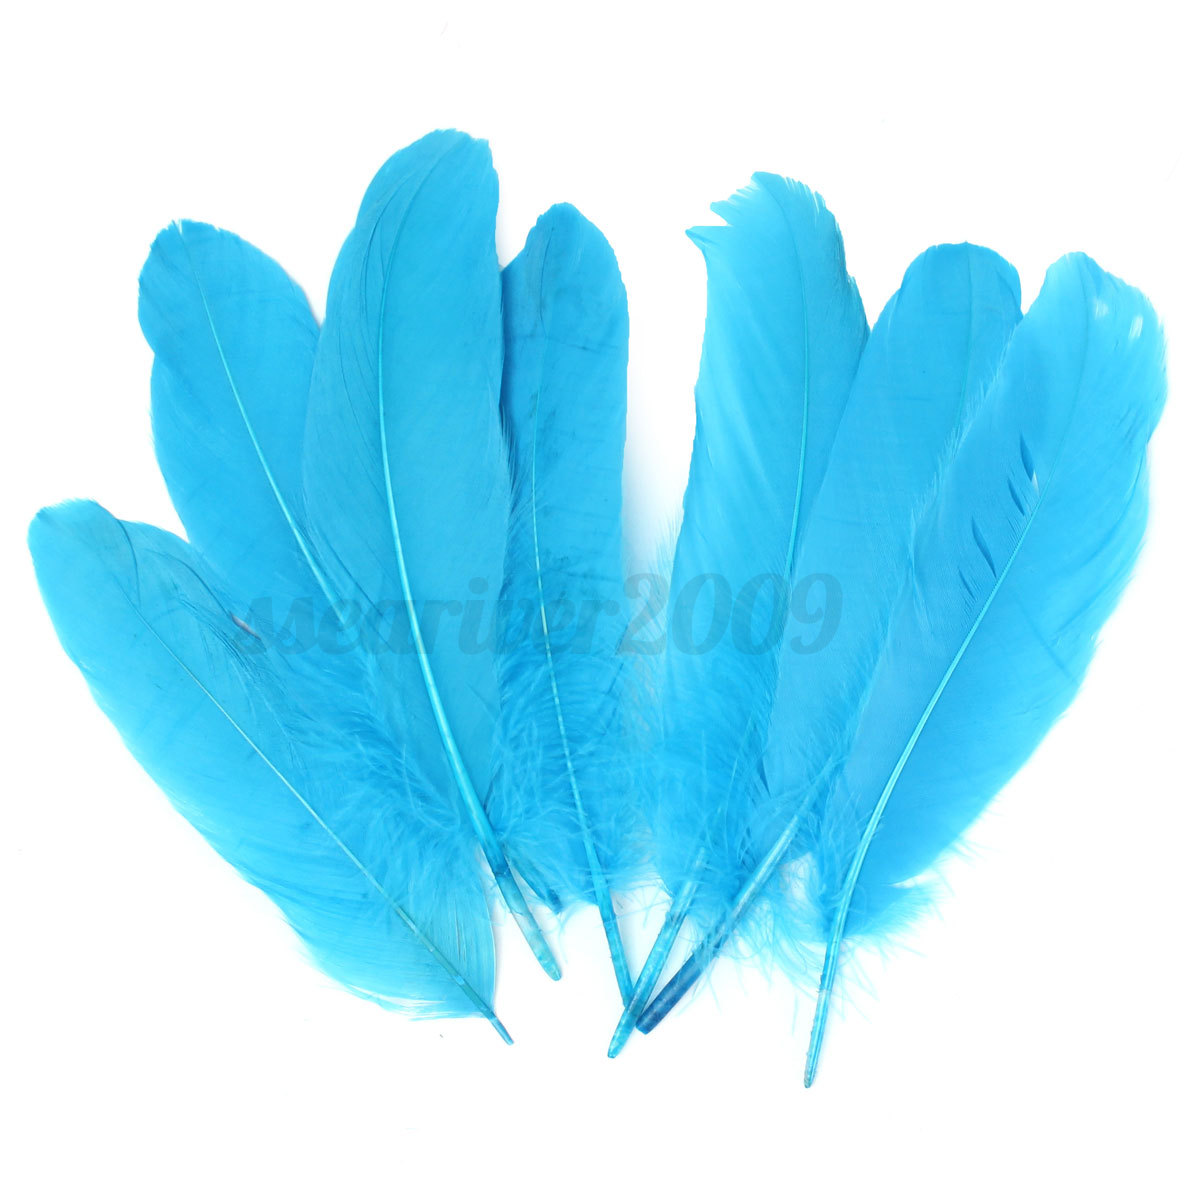 20Pcs 15-20cm Beautiful Artificial Goose Feathers For DIY Craft Jewelry Making